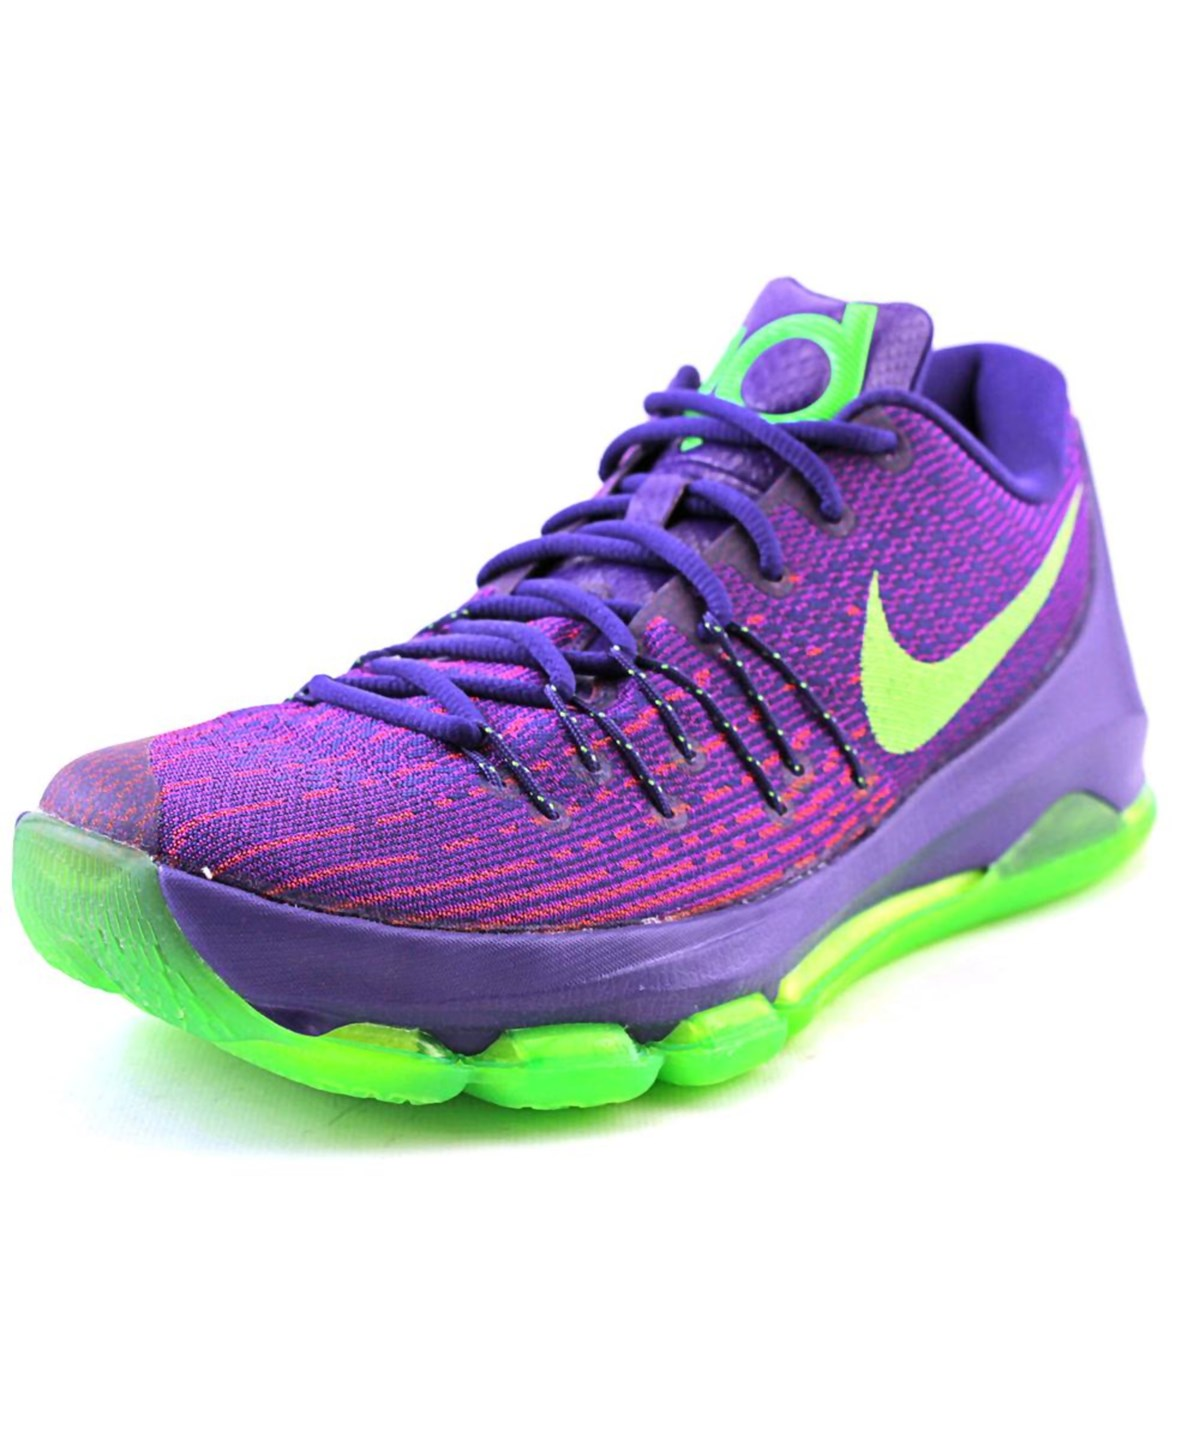 espacio Hormiga Borrar  Nike Kd 8 Men Round Toe Synthetic Purple Basketball Shoe' | ModeSens